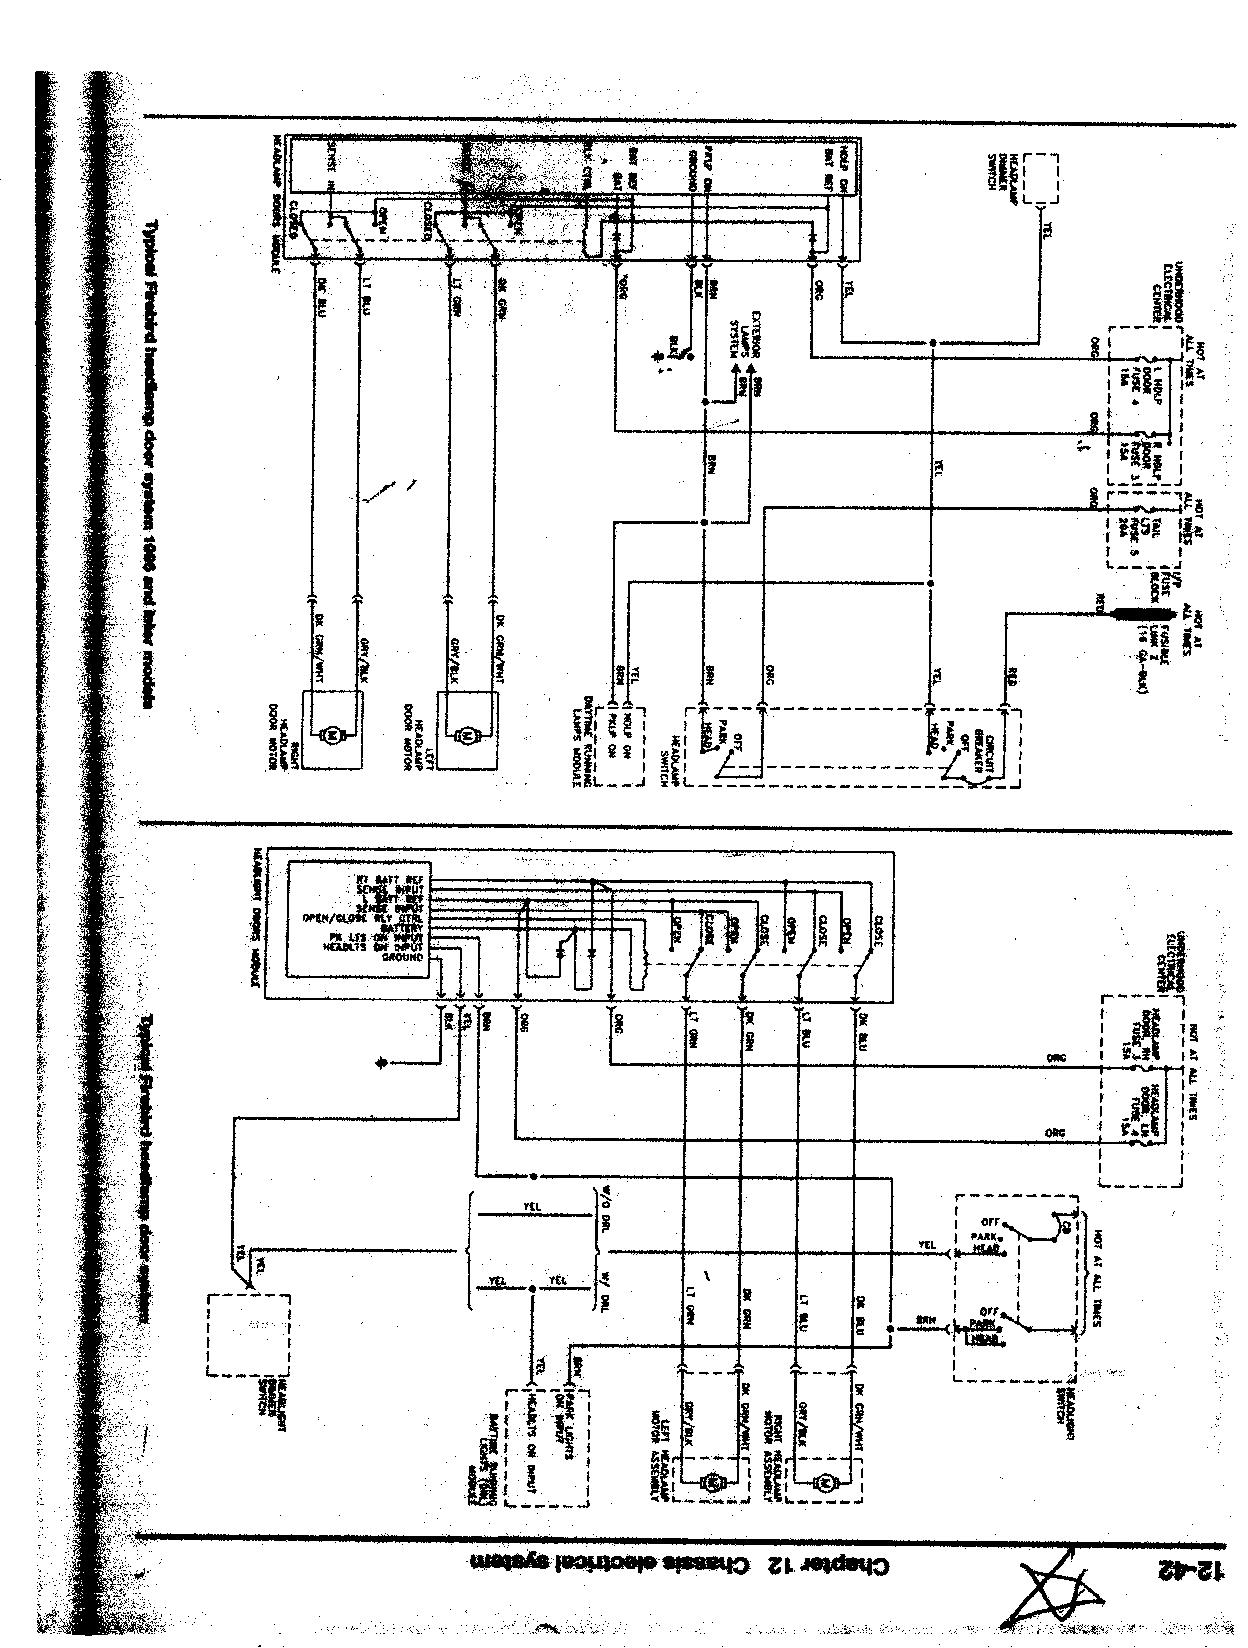 Wiring Diagram 2000 Pontiac Firebird Diagrams 1986 Fuse 2002 Headlight 1979 Trans Am